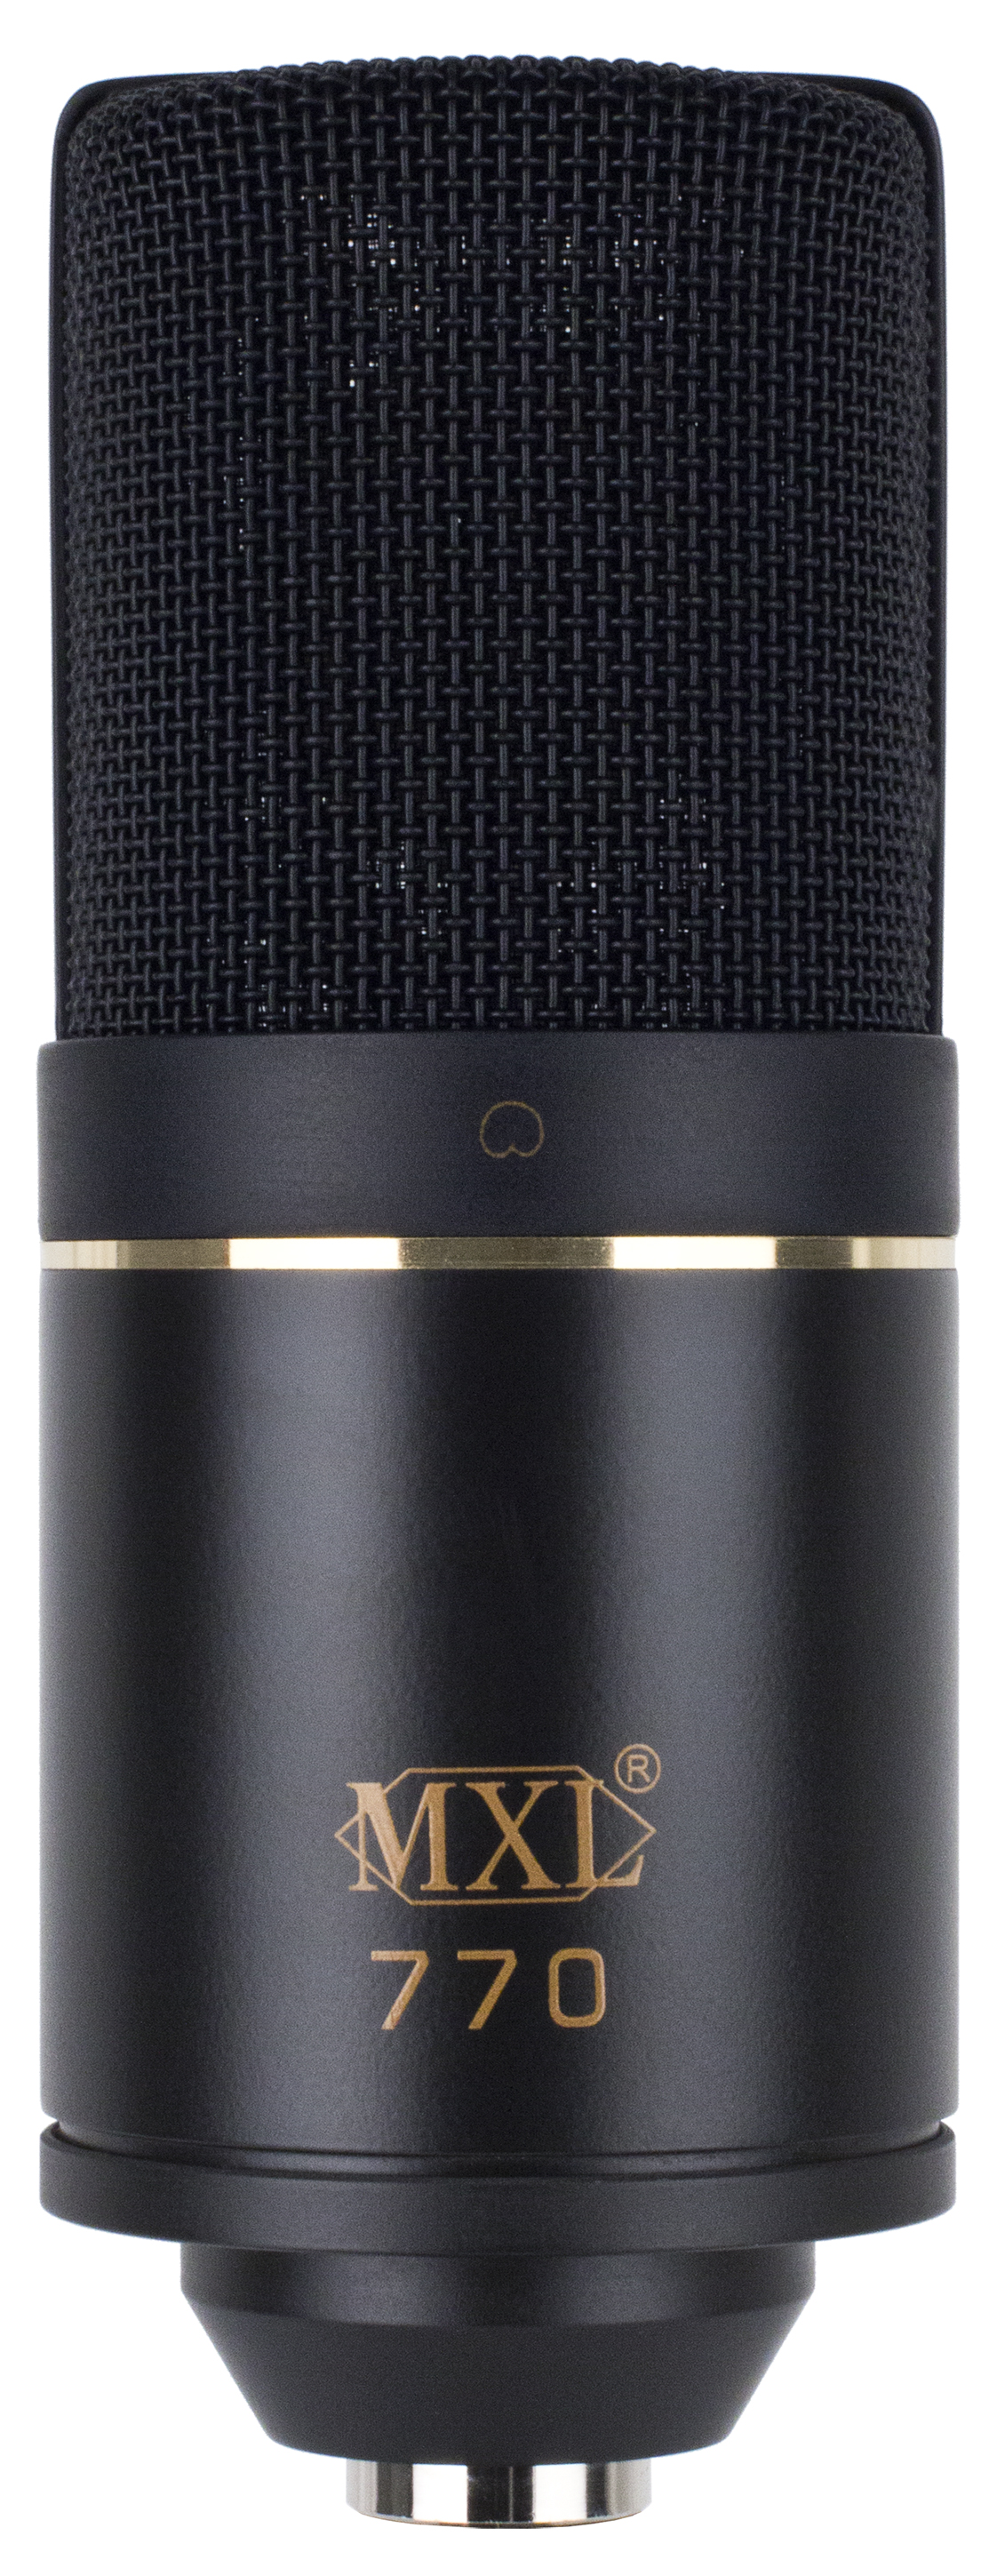 Thoughtful Design, Iconic Brand: The Marshall MXL 770 Condenser Microphone